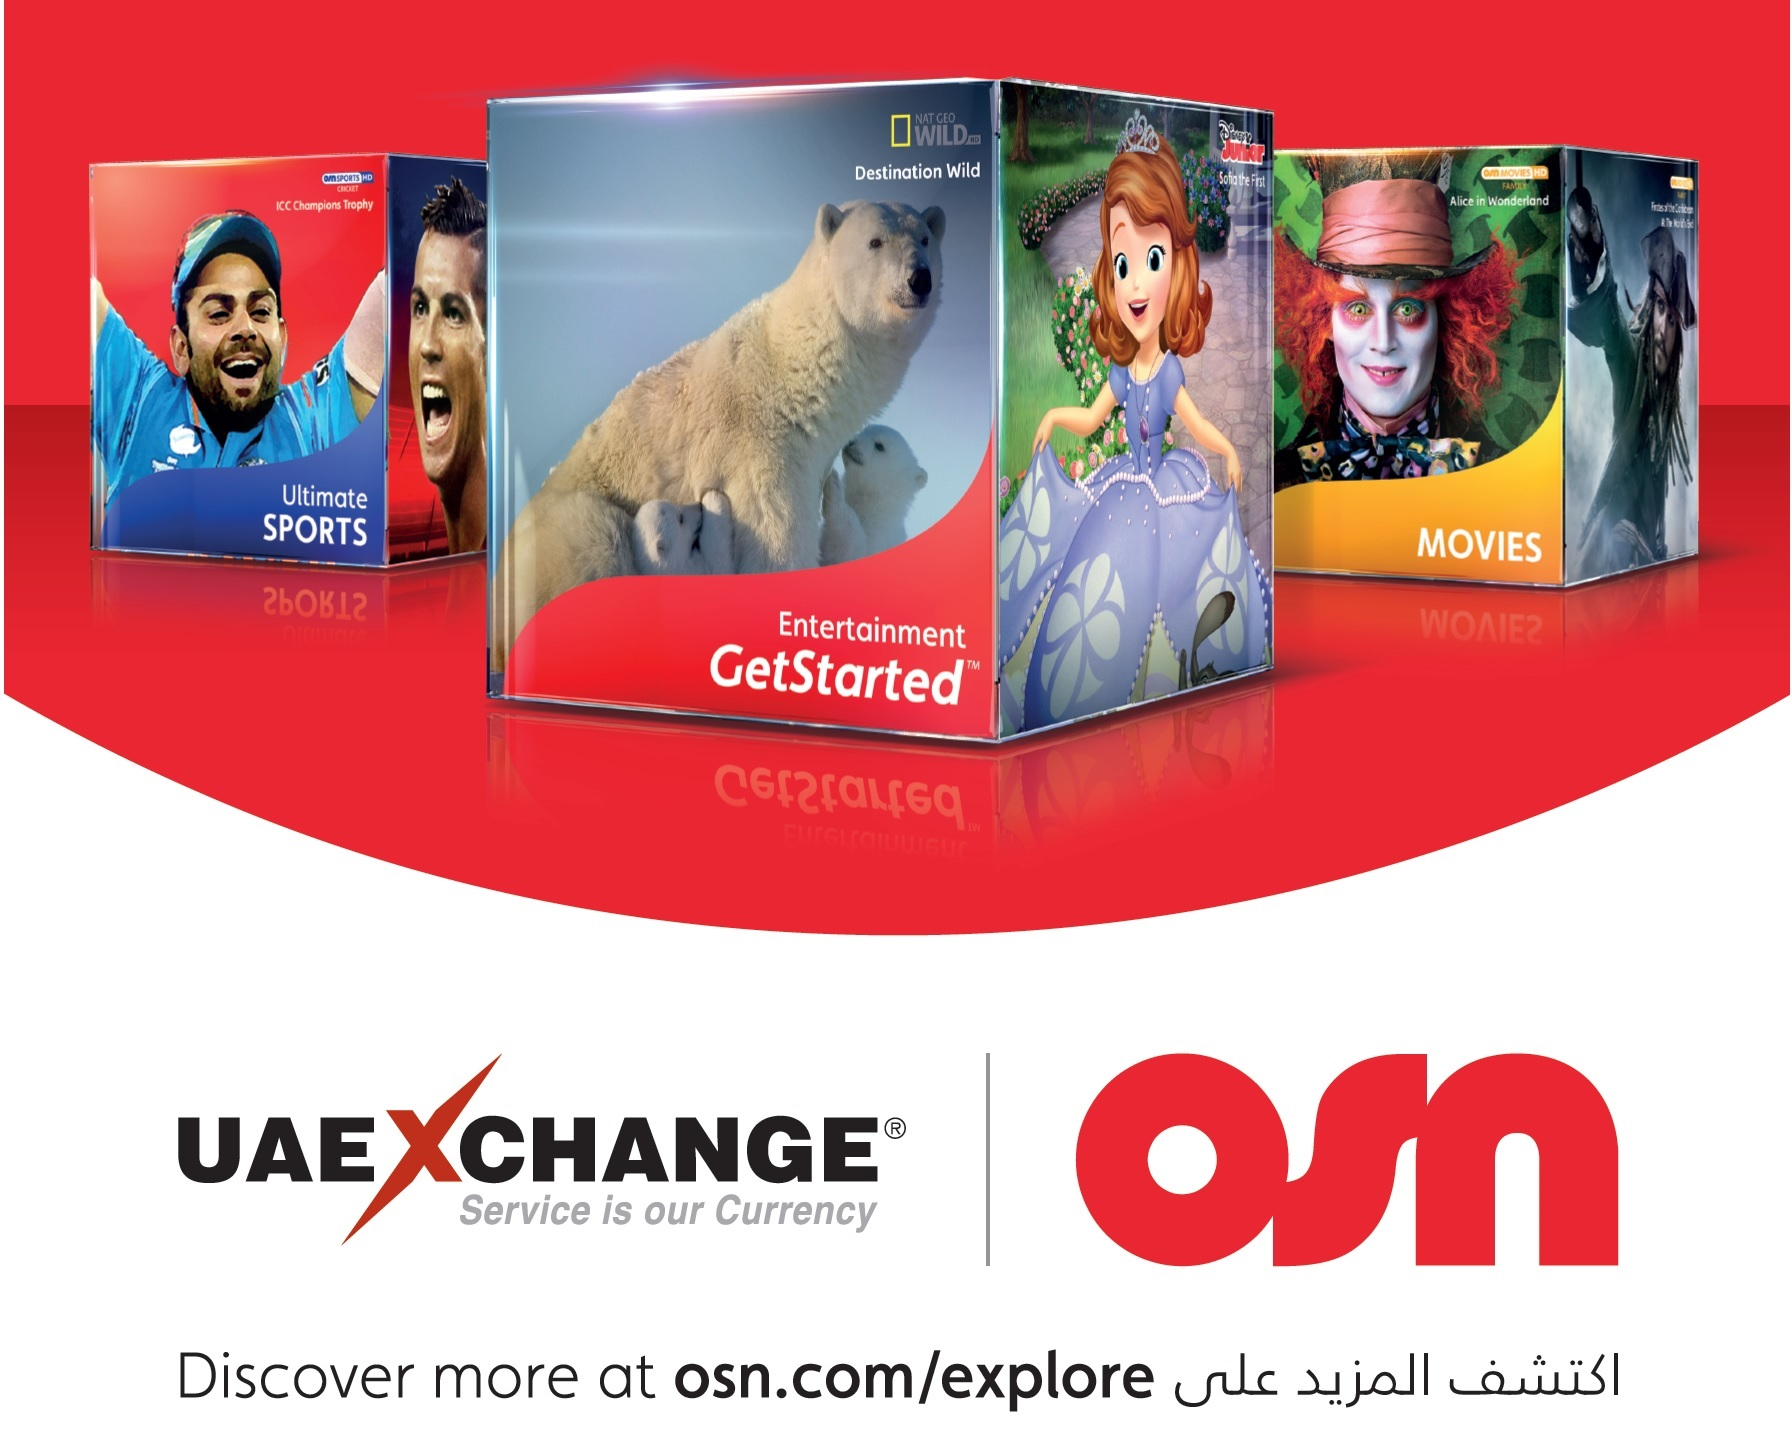 OSN Subscribers can now Make Payments at UAE Exchange